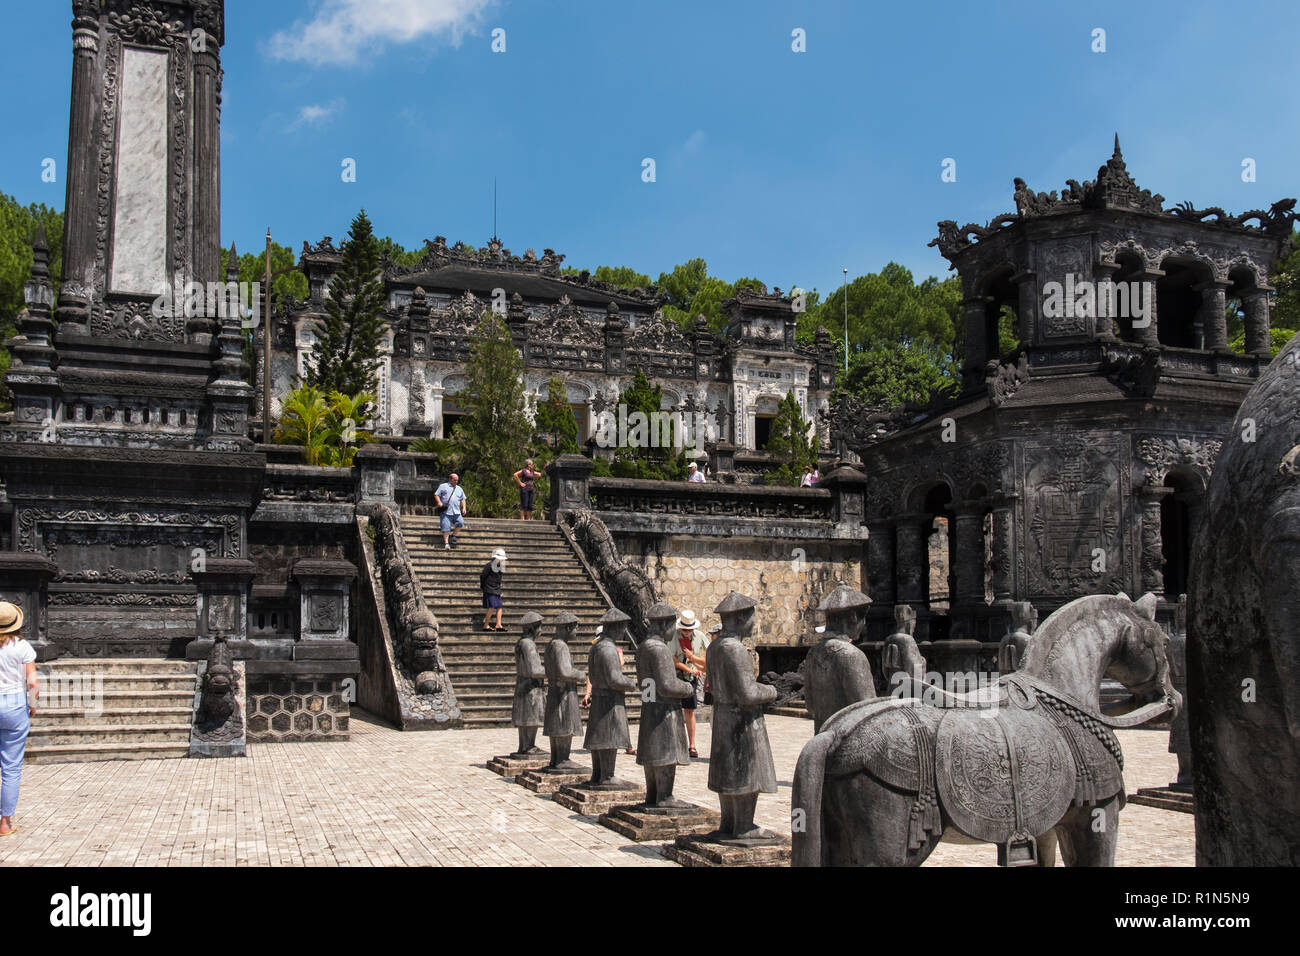 Tomb of Khai Dịnh officially Ung Mausoleum located in Chau Chu mountain near Hue  Vietnam Asia built for Emperor Khai Dịnh twelfth Emperor of  Nguyen  - Stock Image